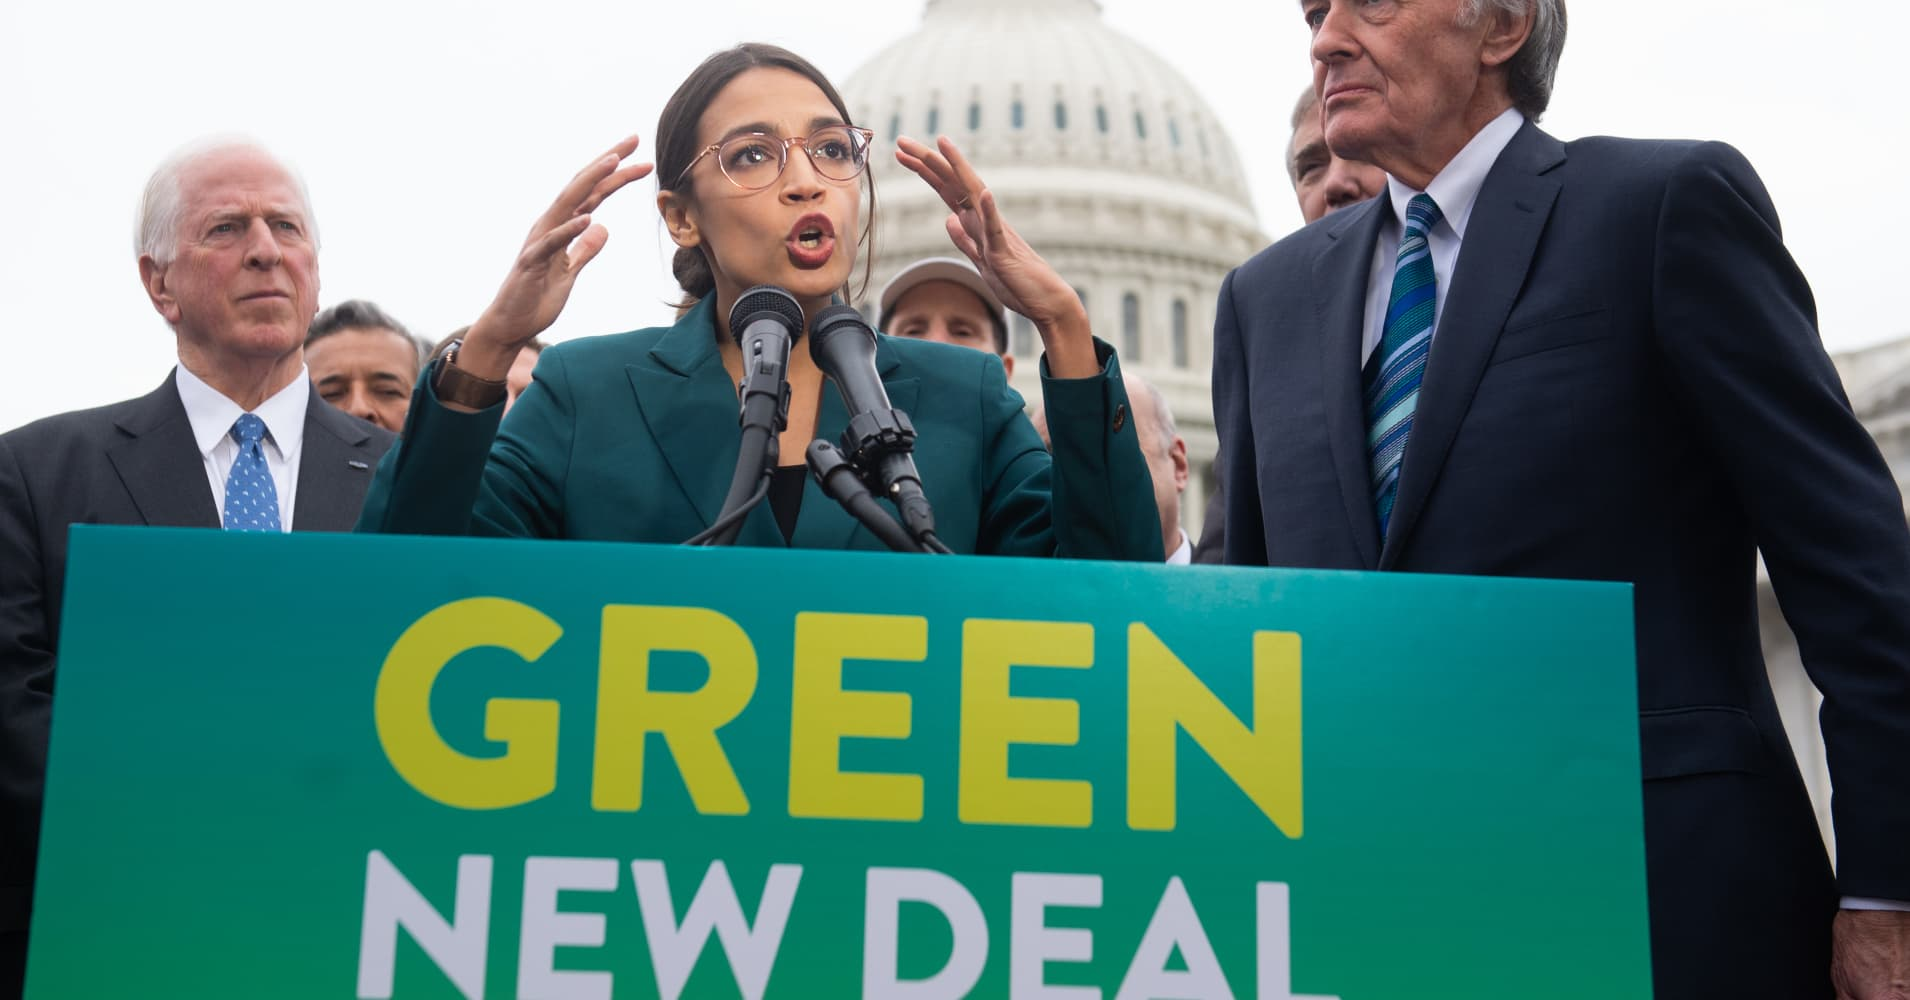 Alexandria Ocasio-Cortez's Green New Deal is the latest villain in Trump's 2020 campaign stump speech